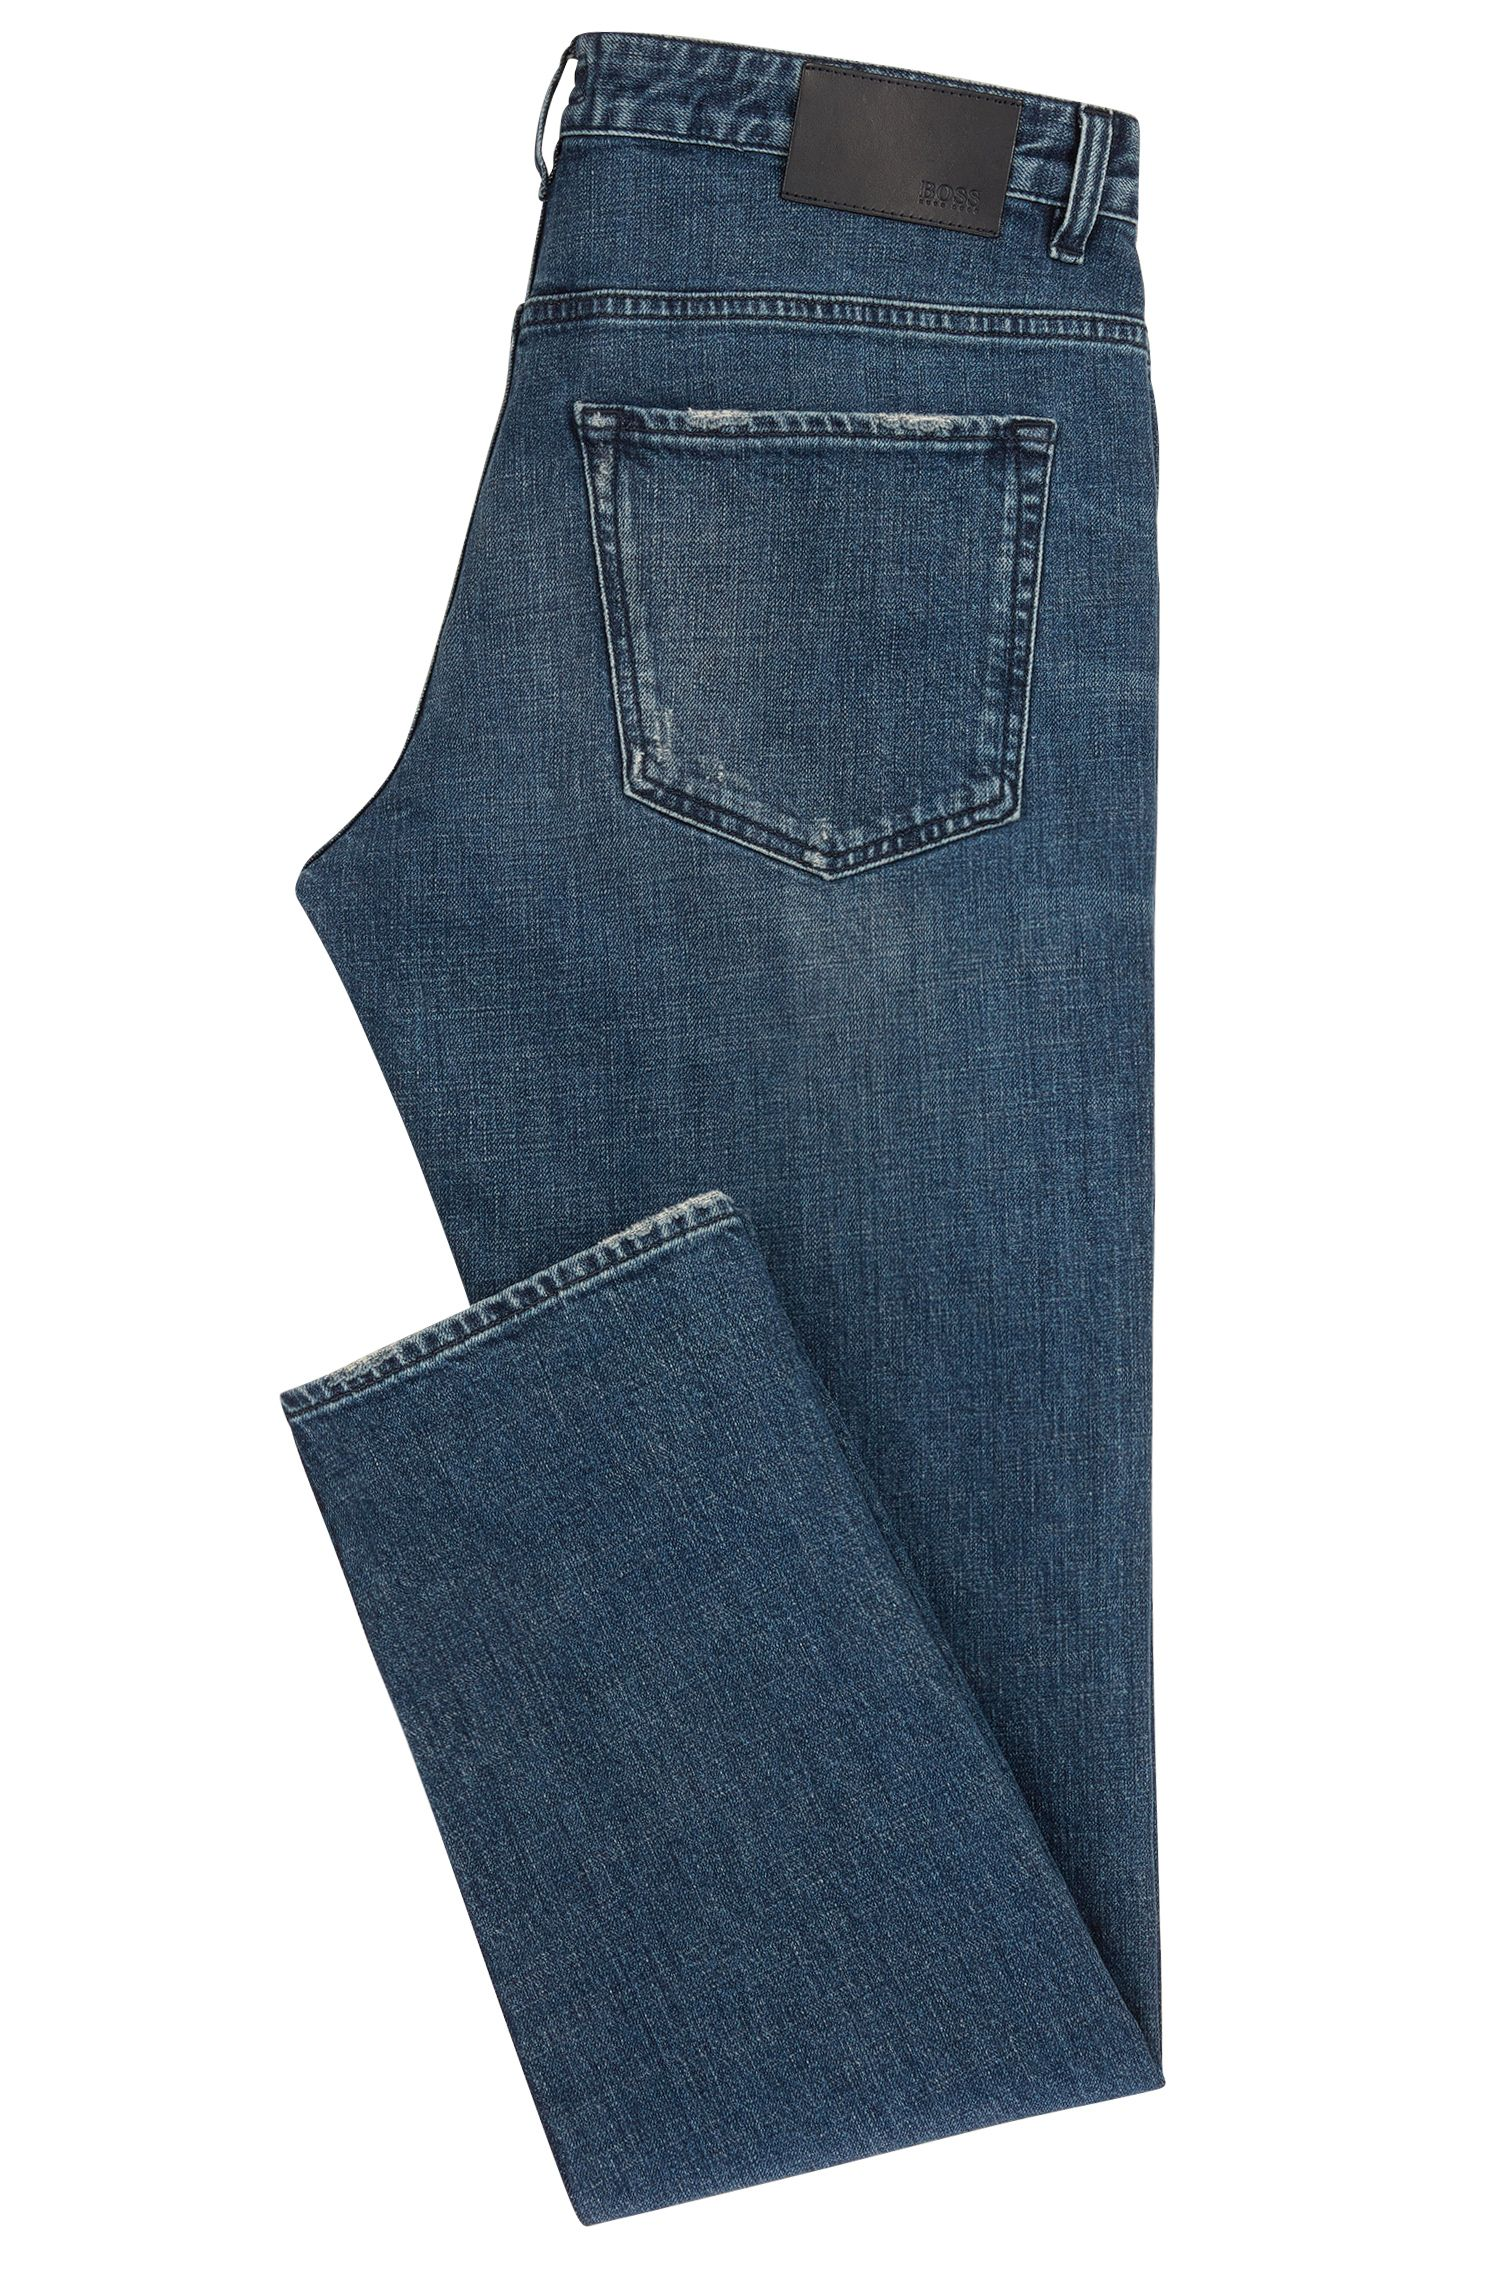 12 oz Stretch Cotton Jeans, Slim Fit | Delaware